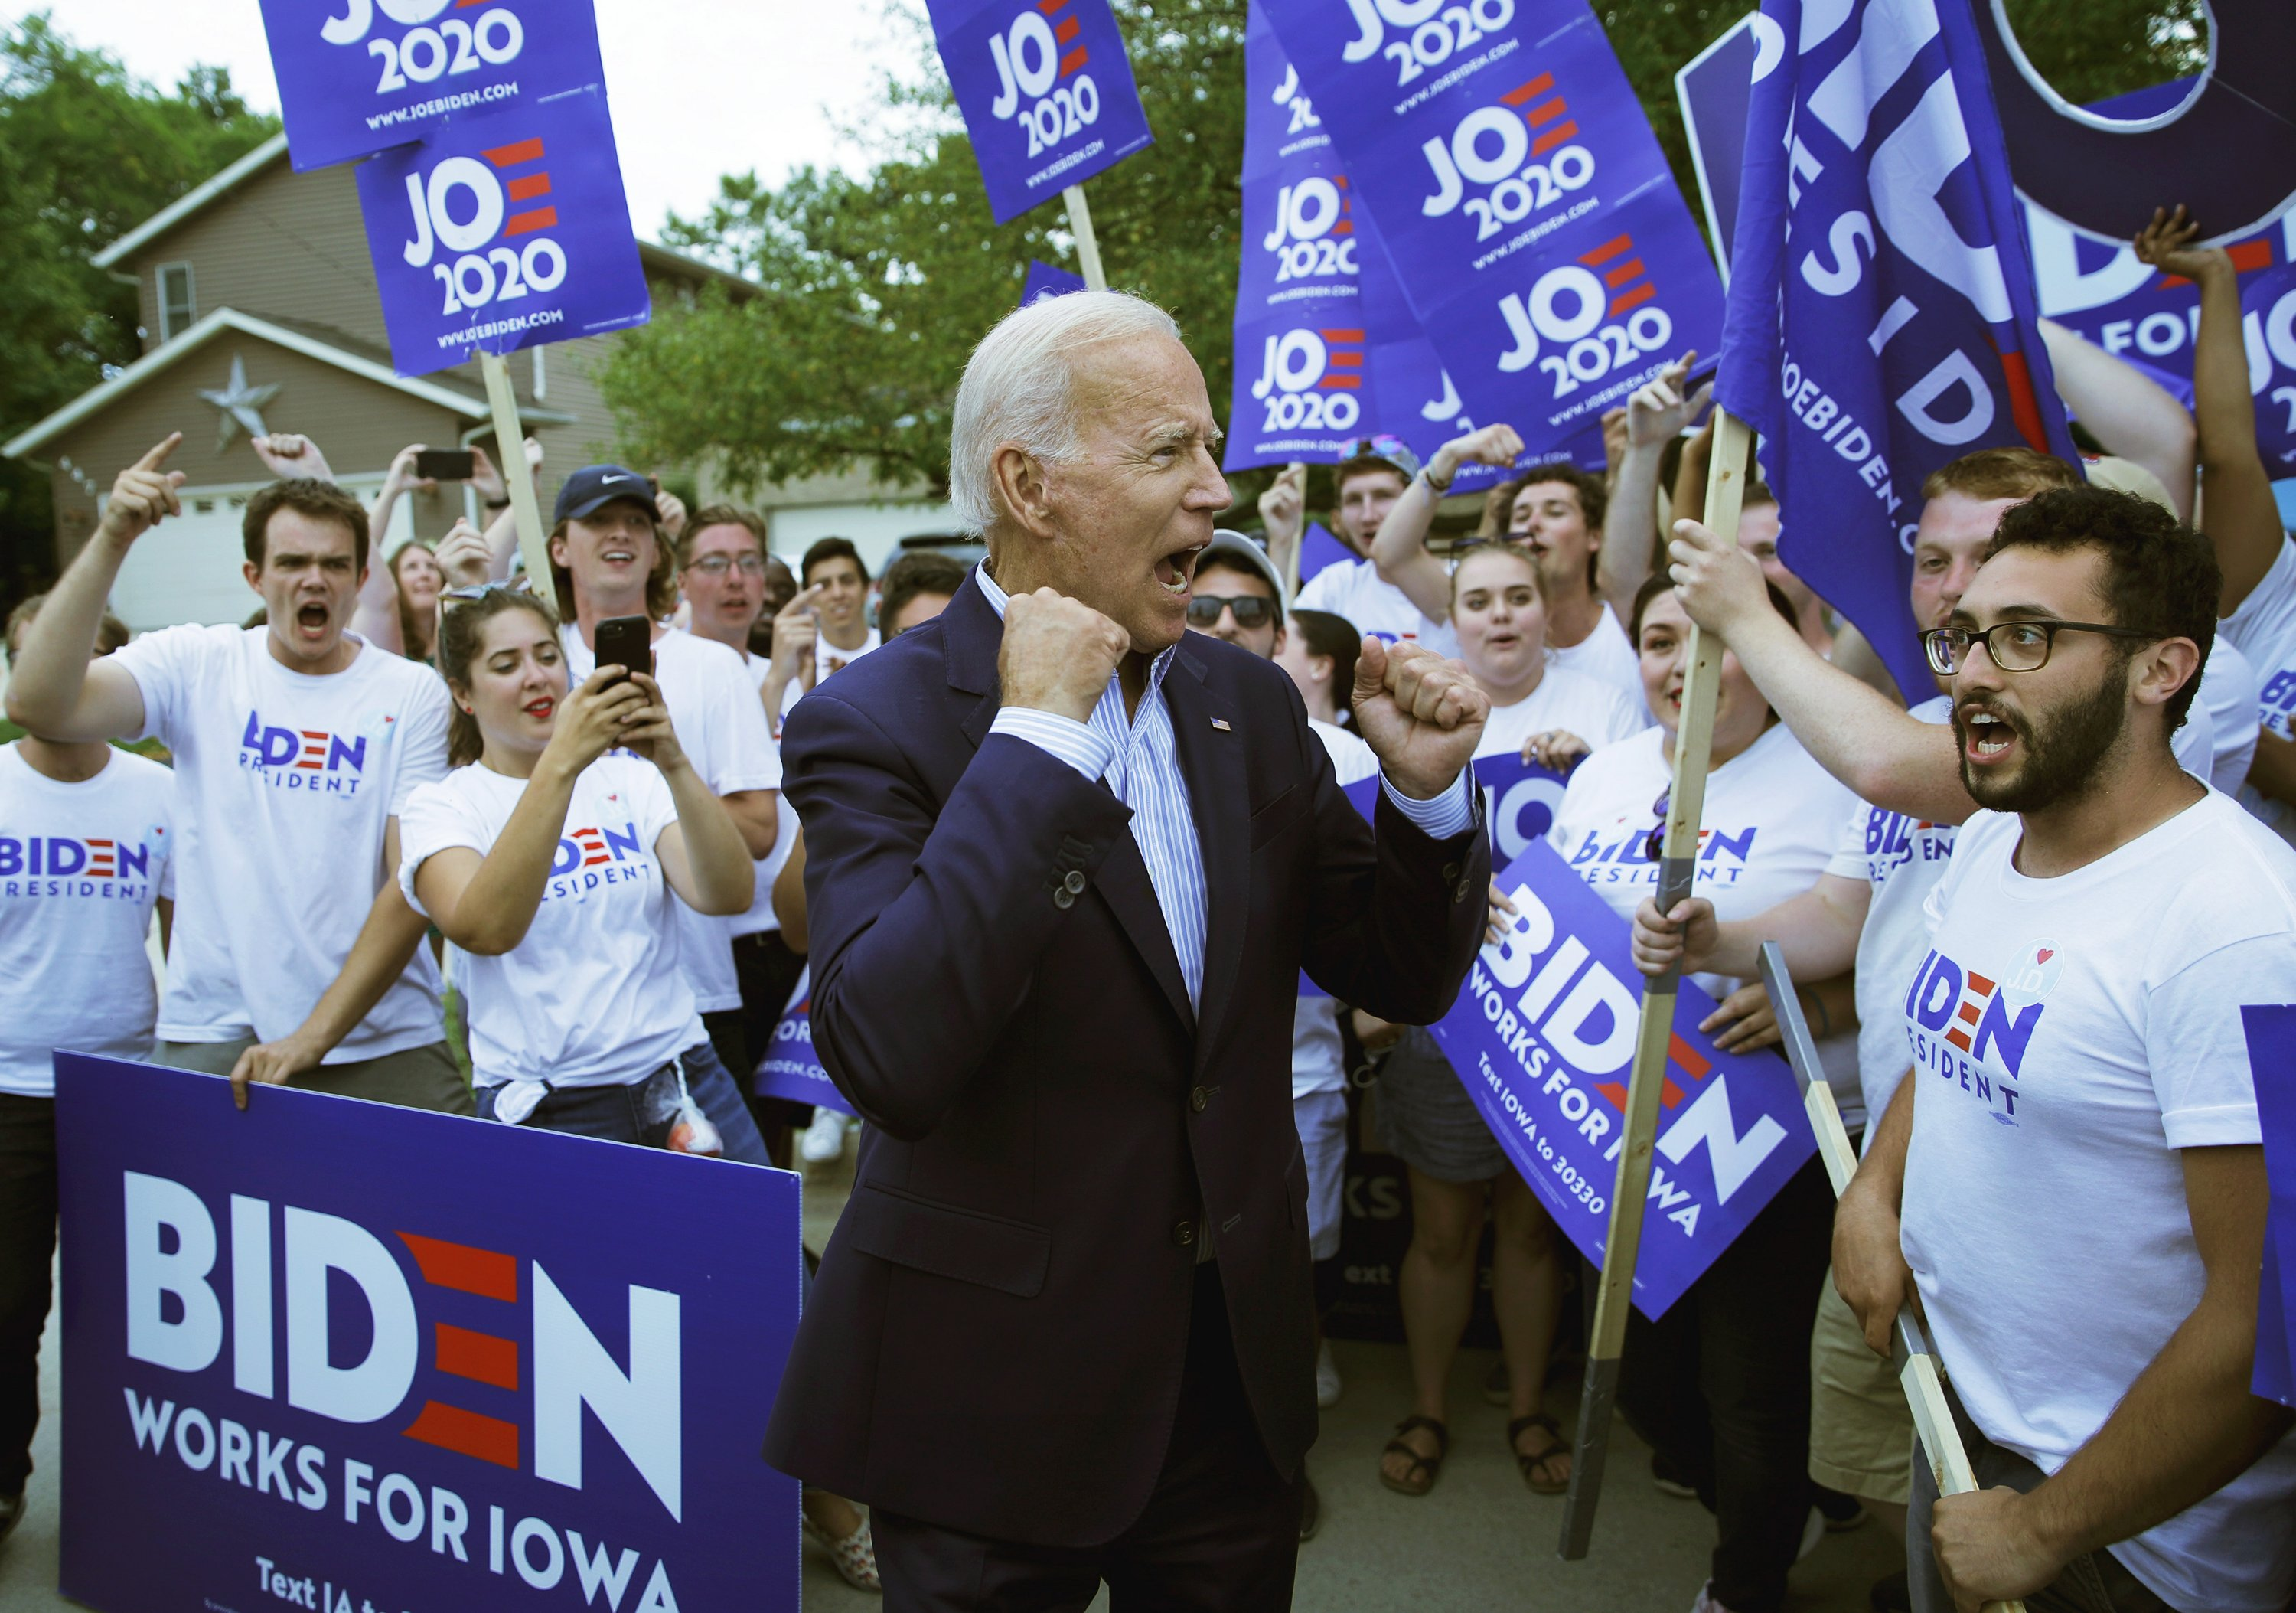 Biden is still the Democrat to beat, but rivals see weakness